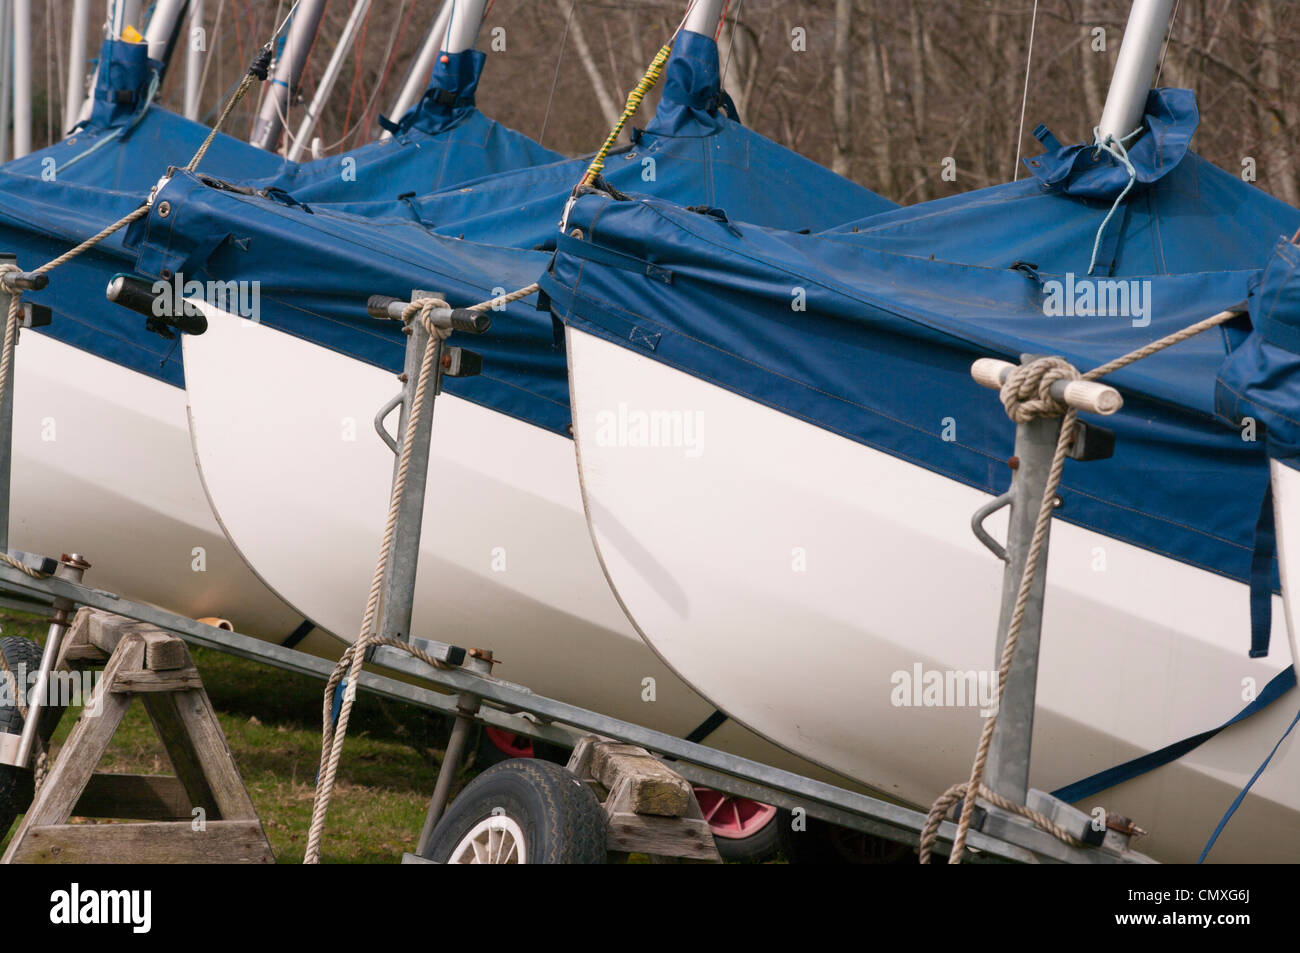 Front Bows Of Sailing Dinghies - Stock Image